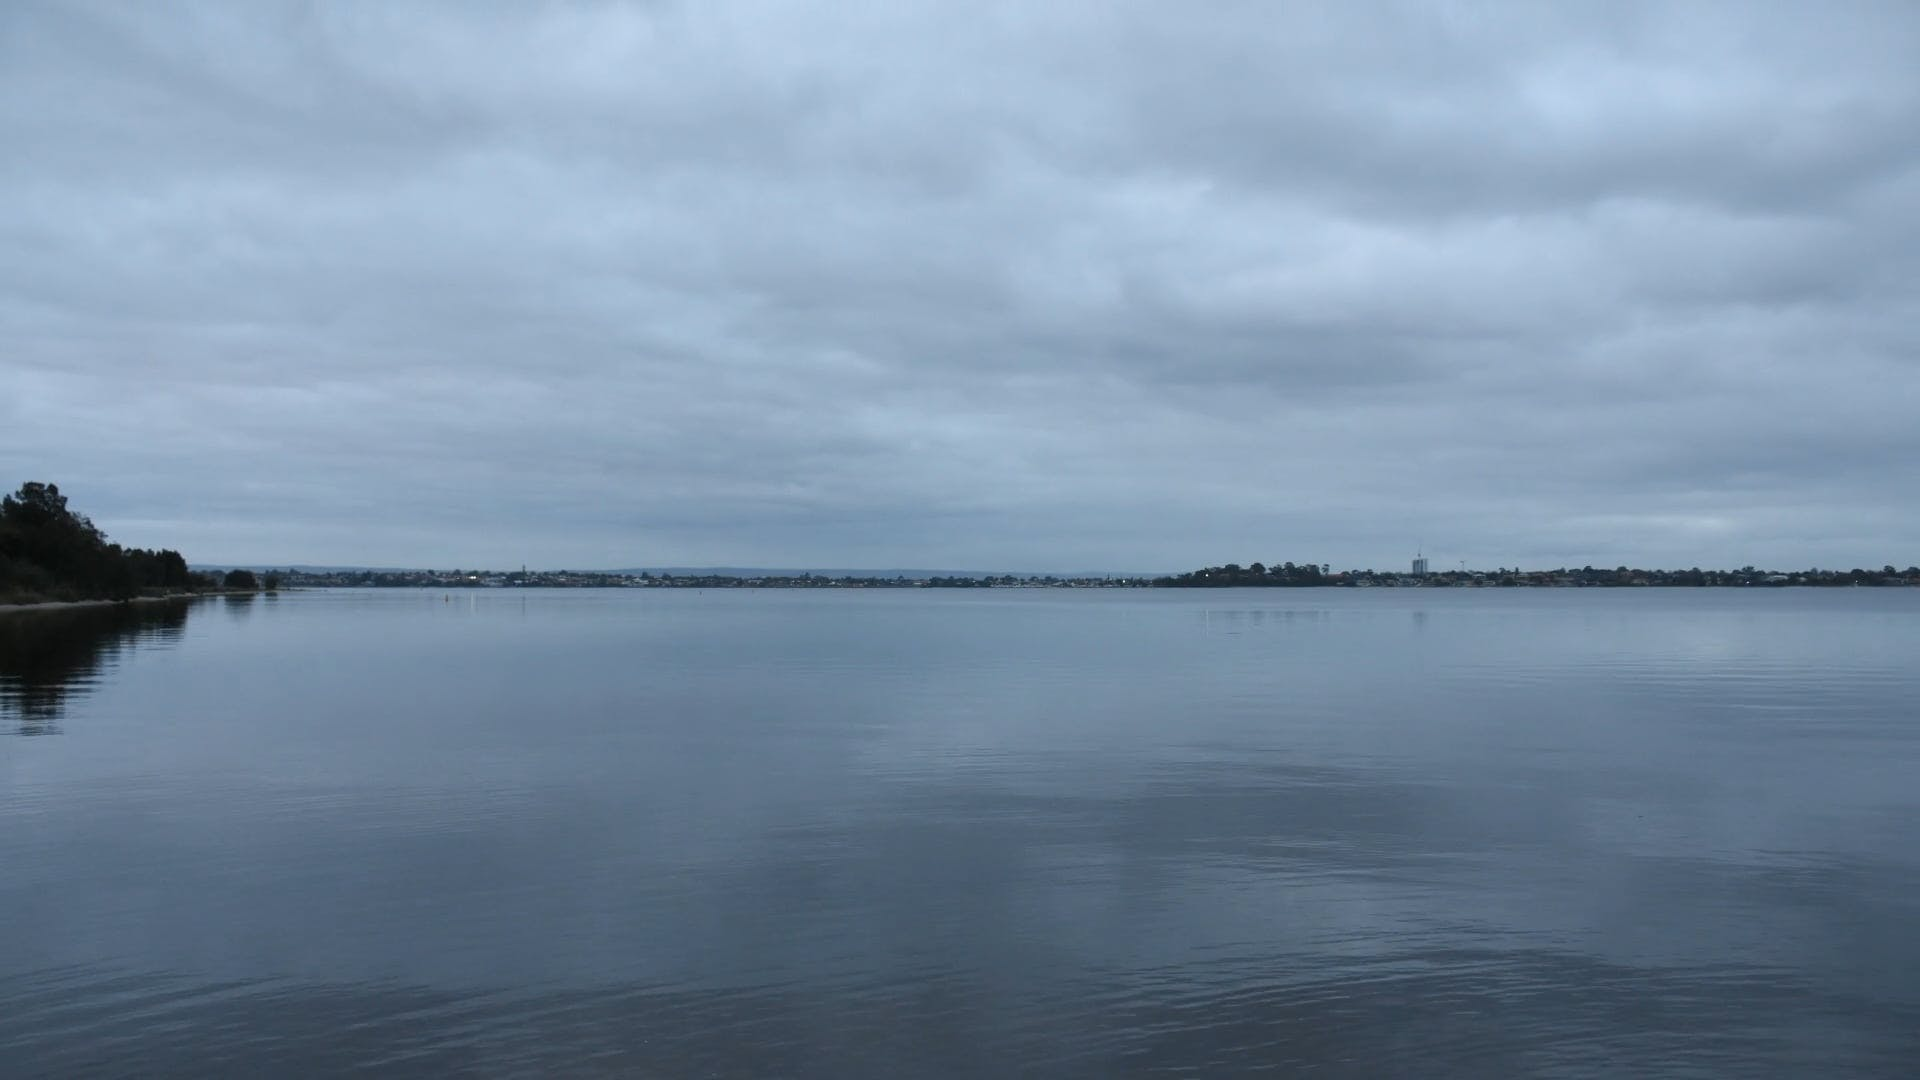 Time Lapse Video Of Water And Clouds